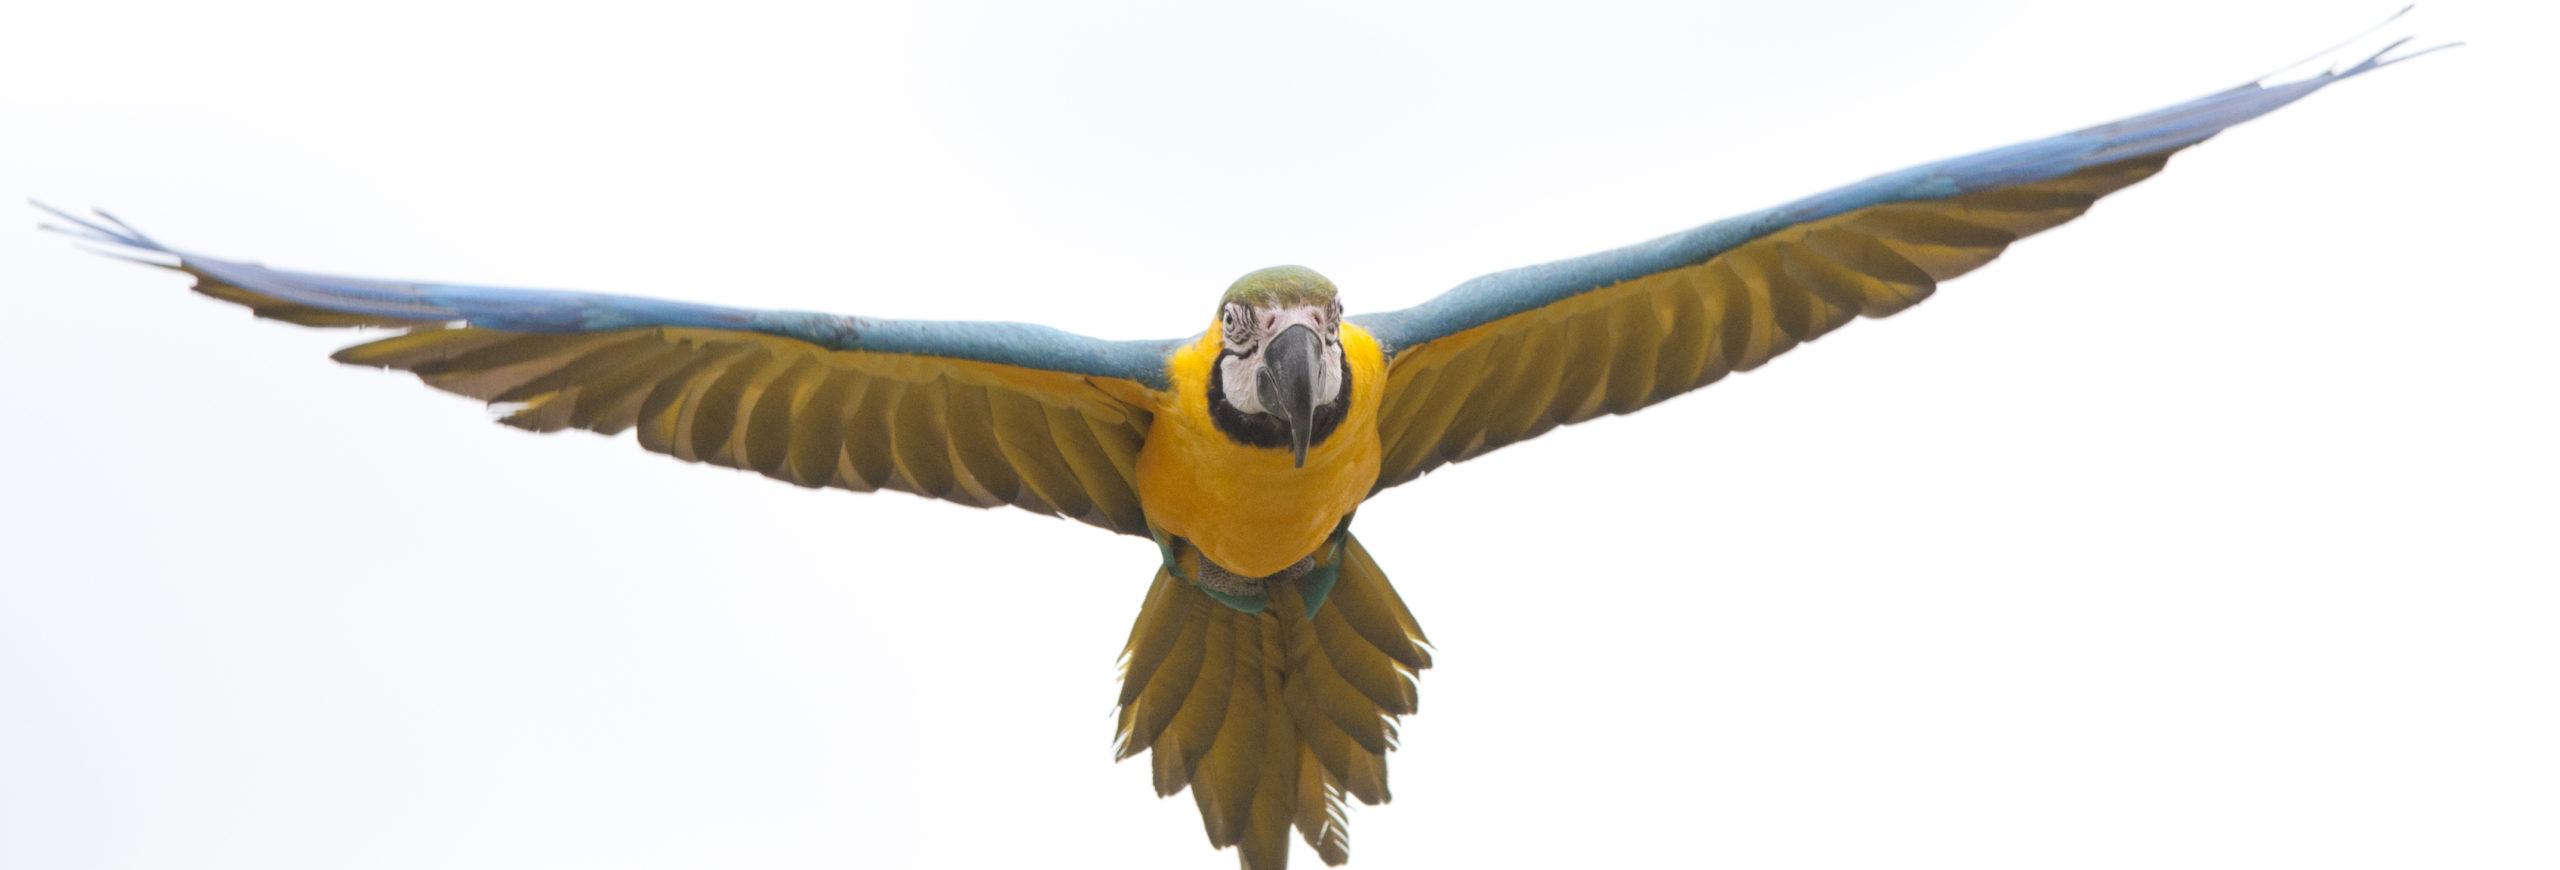 Blue & Gold Macaw in flight on white background